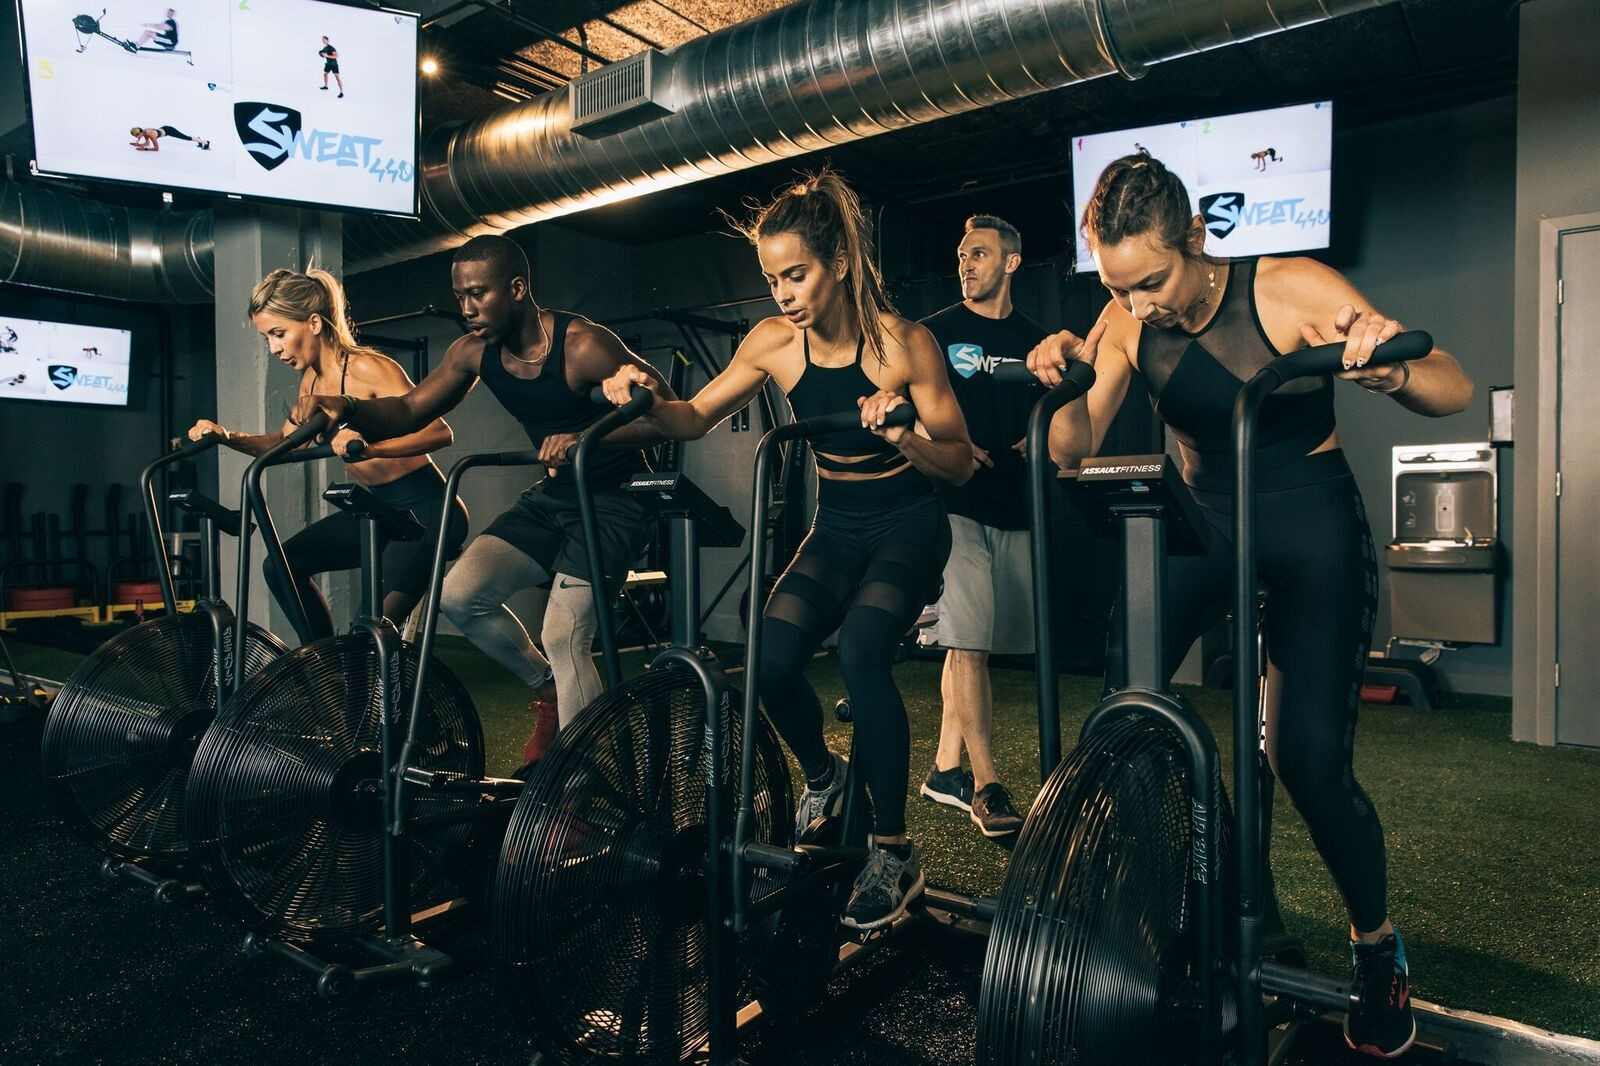 Image result for Sweat440 miami